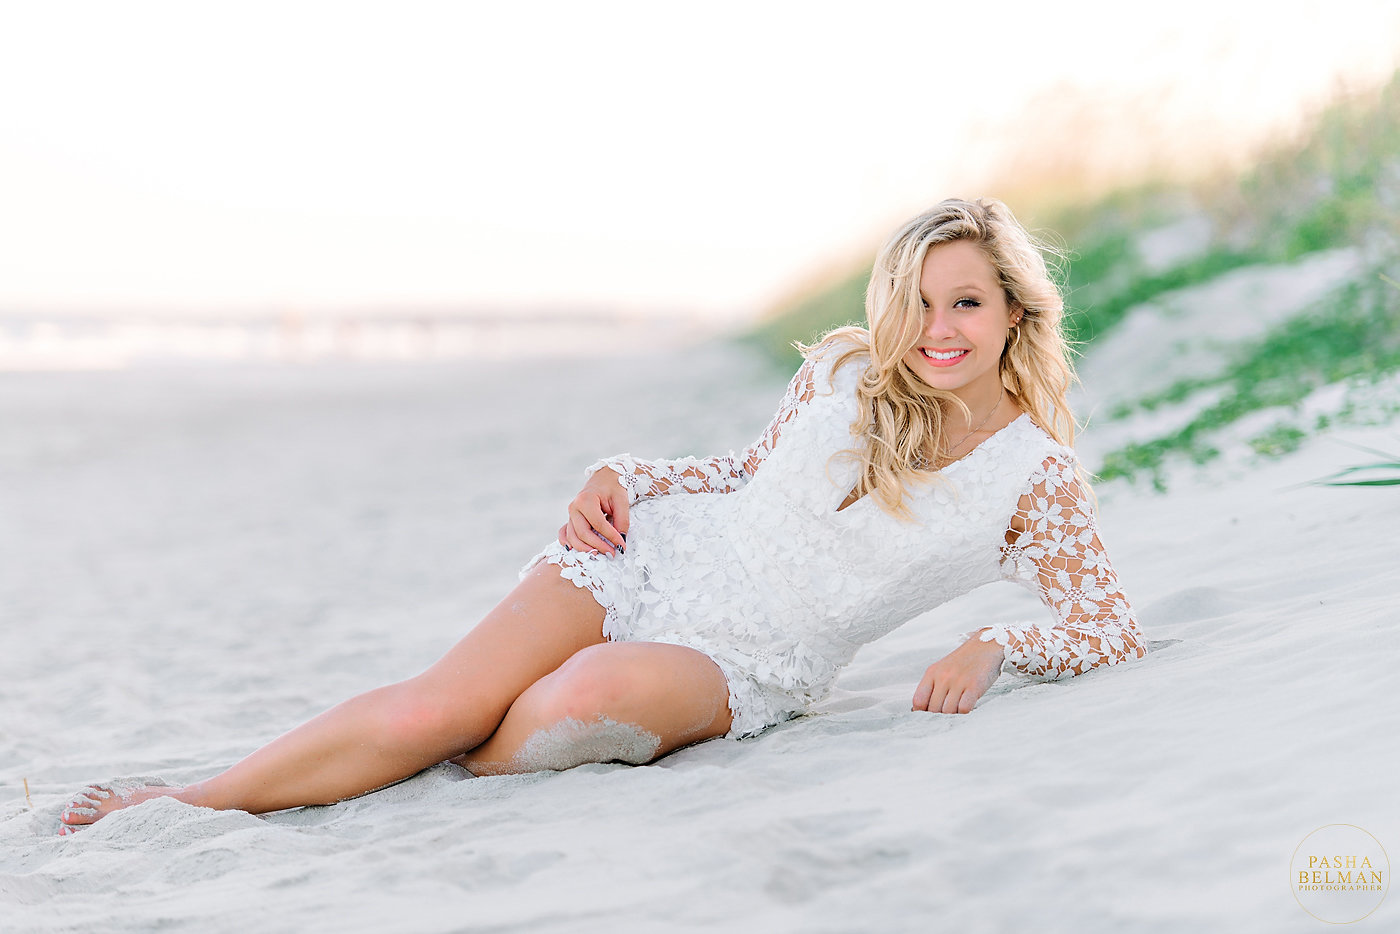 Senior Pictures in Myrtle Beach - Top Senior Photographers in Myrtle Beach and Charleston